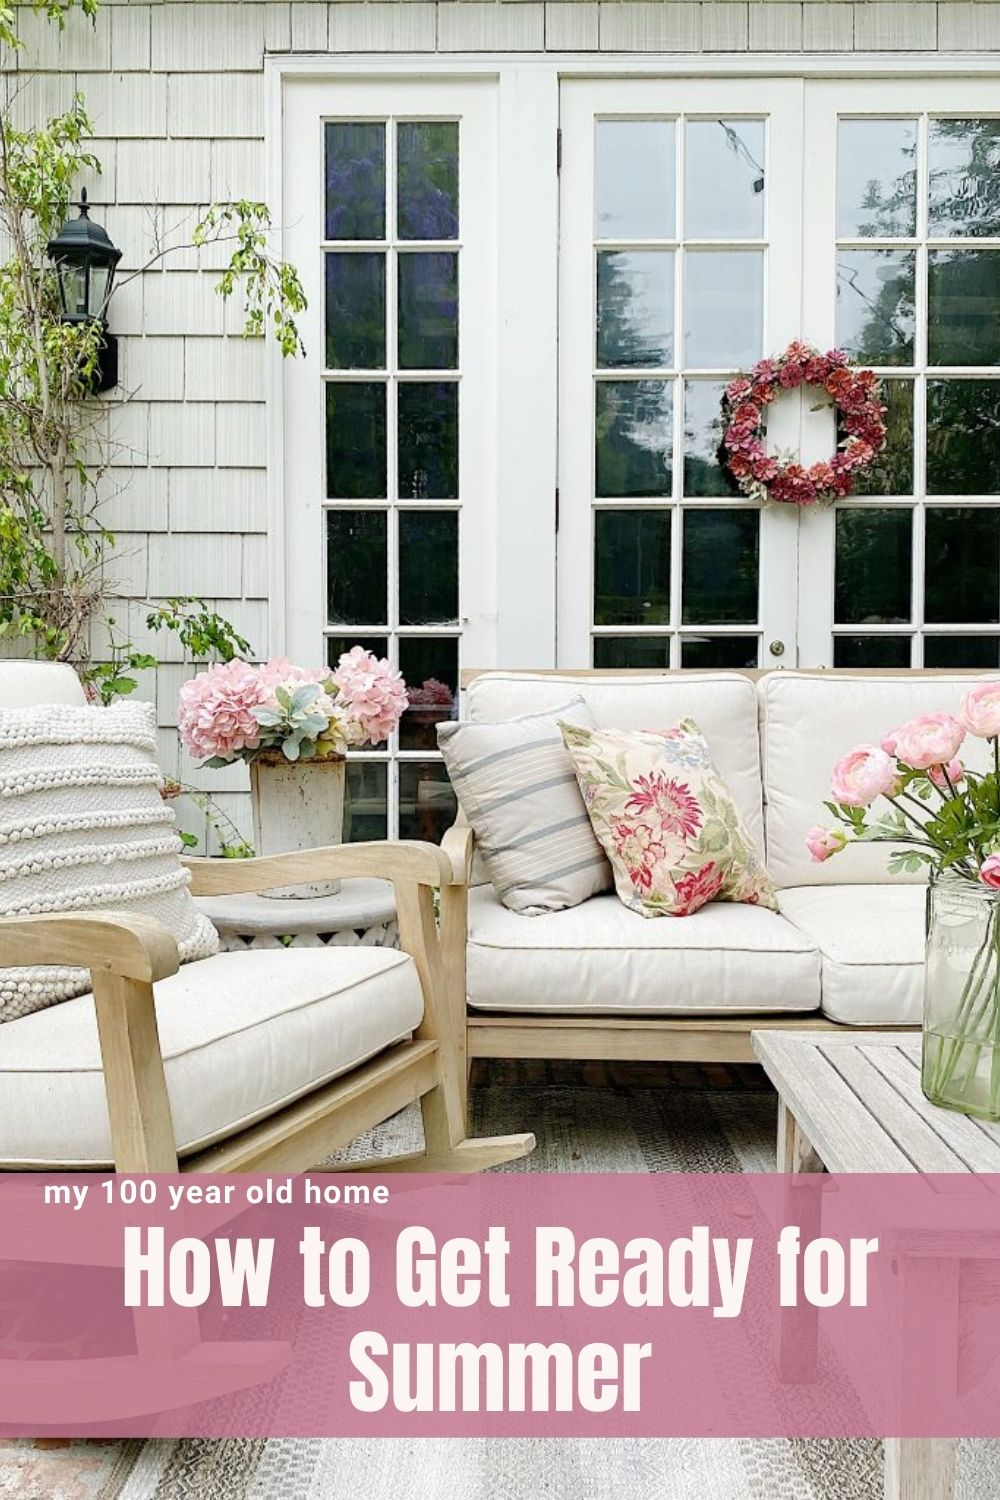 Today I am sharing my weekly thoughts about entertaining, decor, crafts, and recipes, and why I think we need to be thinking about getting ready for summer days!